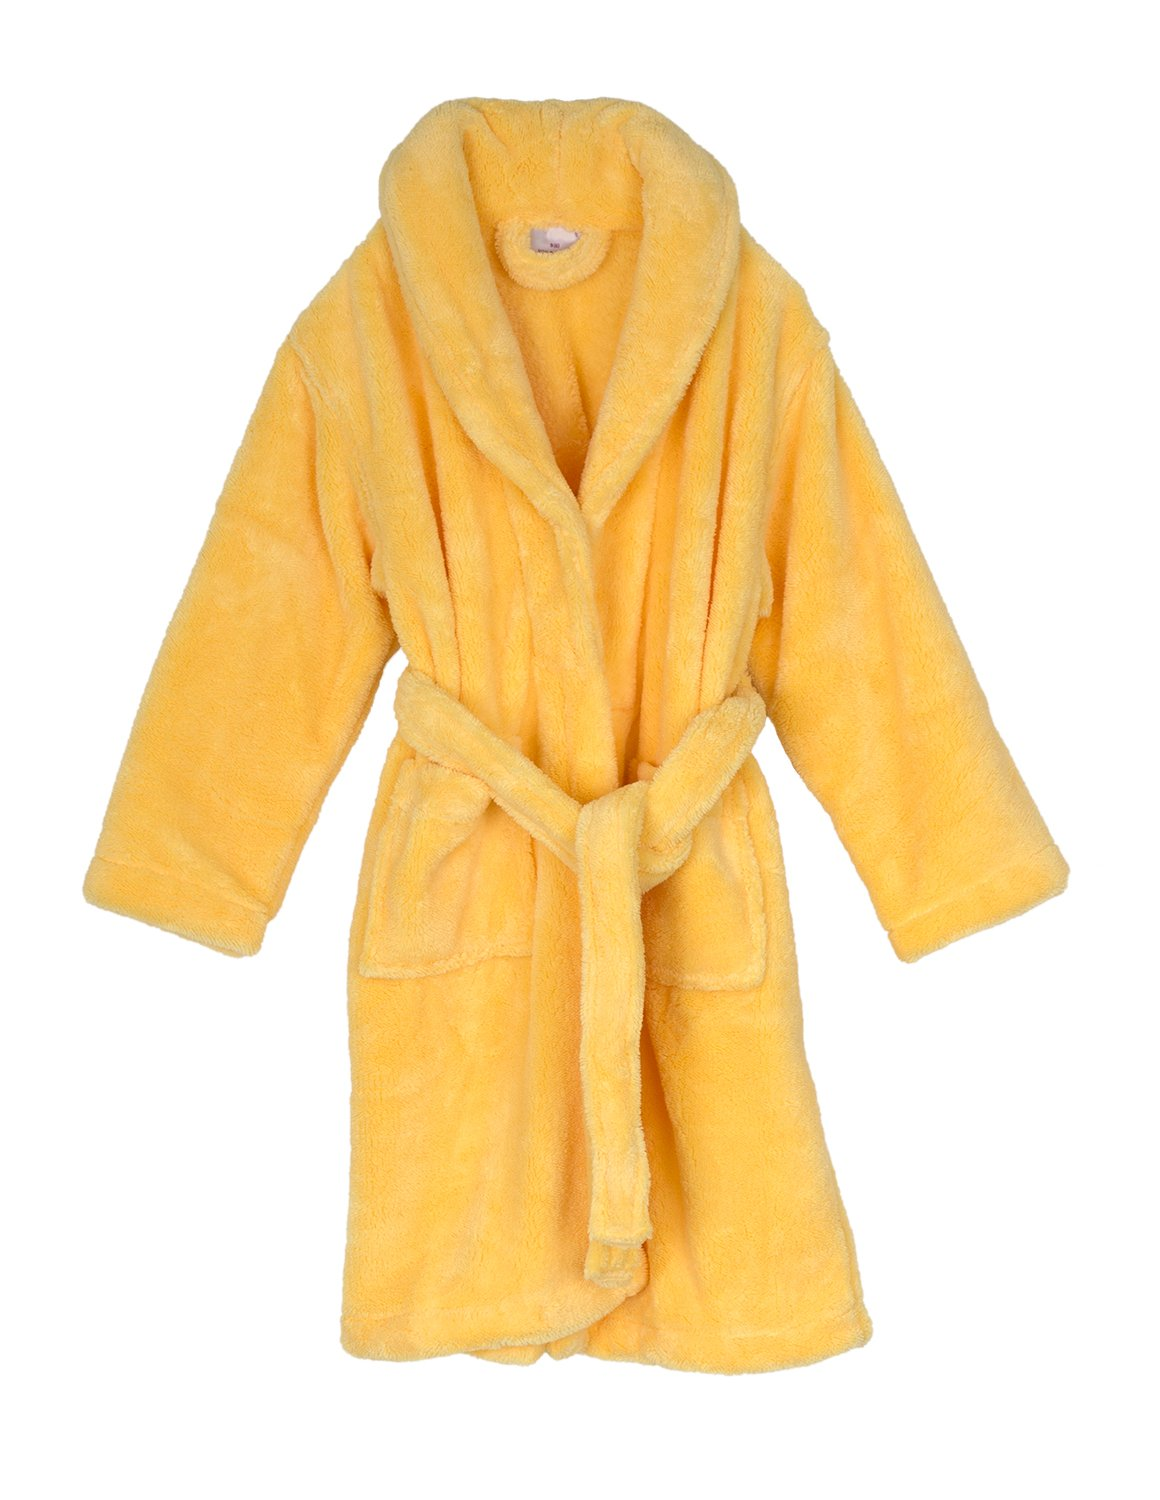 Made in Turkey Kids Plush Shawl Fleece Bathrobe TowelSelections Boys Robe